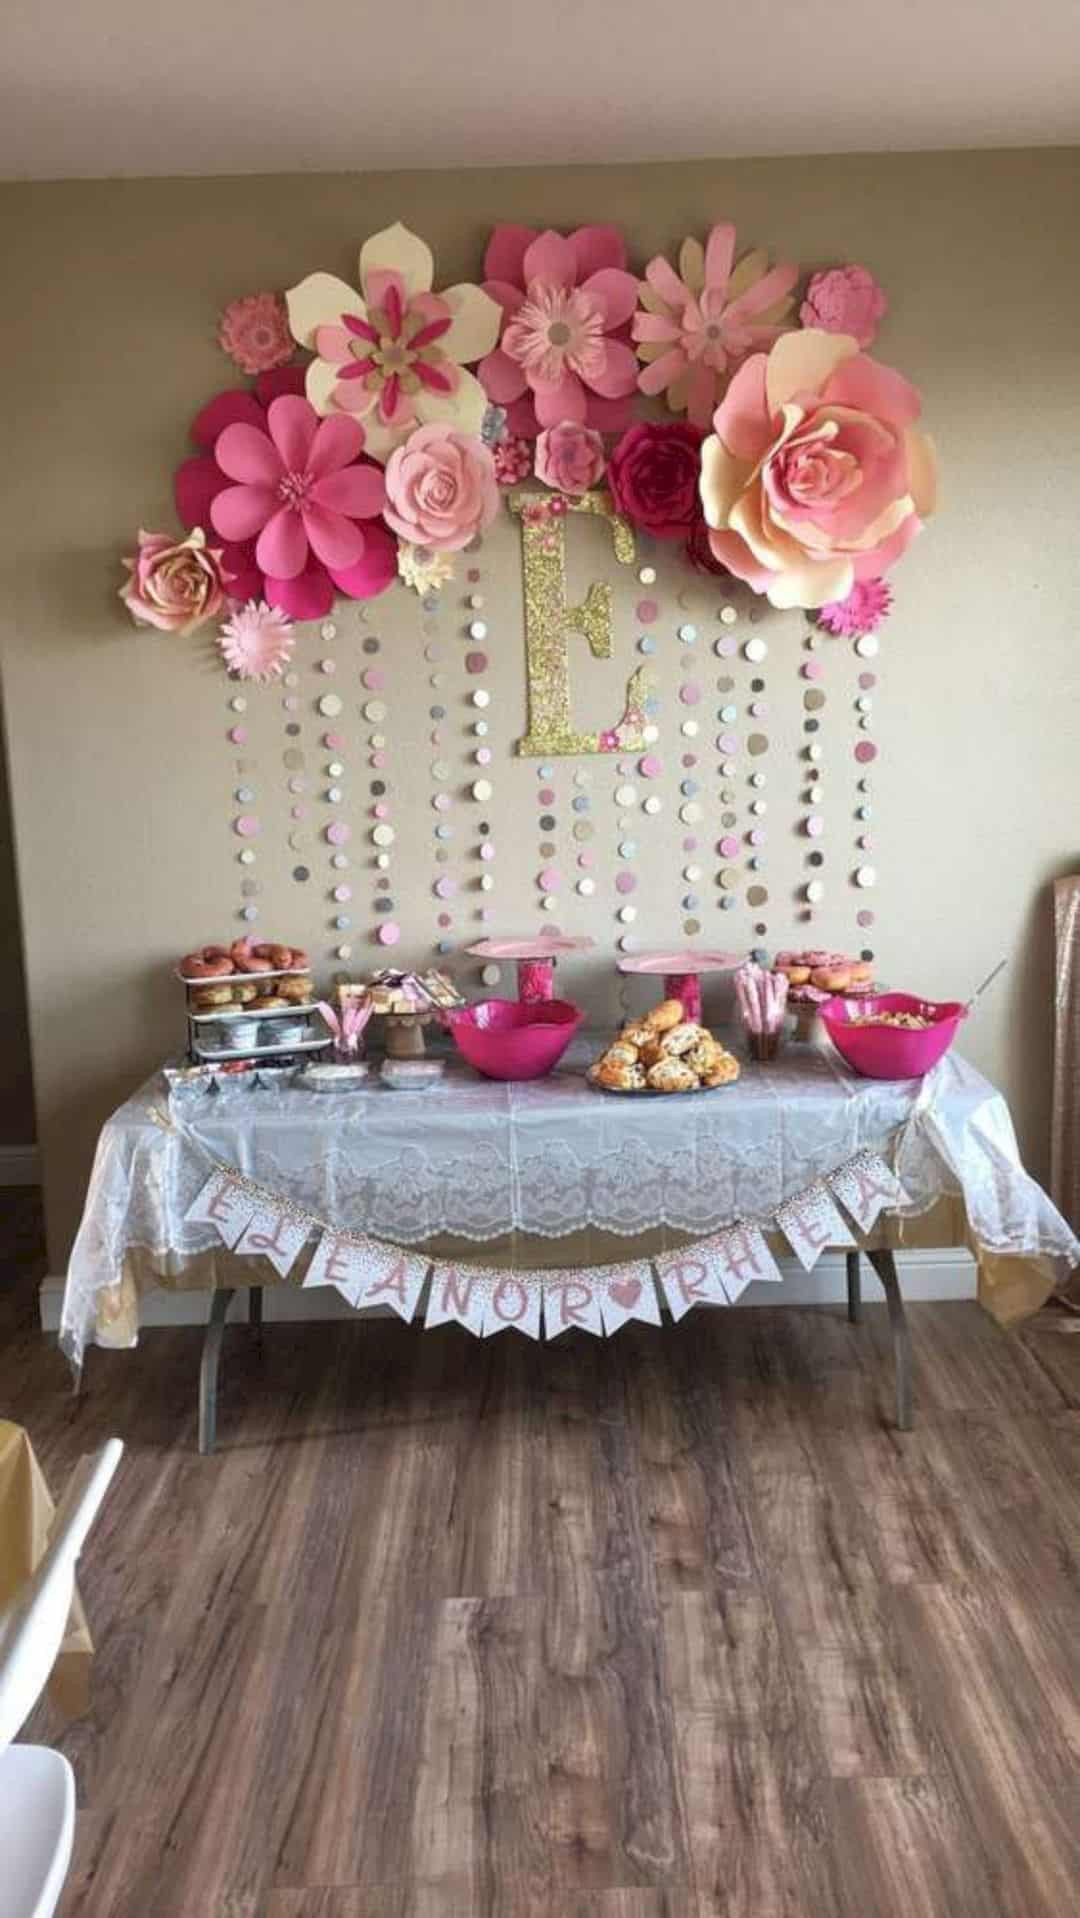 Baby Shower Decoration Ideas For A Girl  16 Cute Baby Shower Decorating Ideas